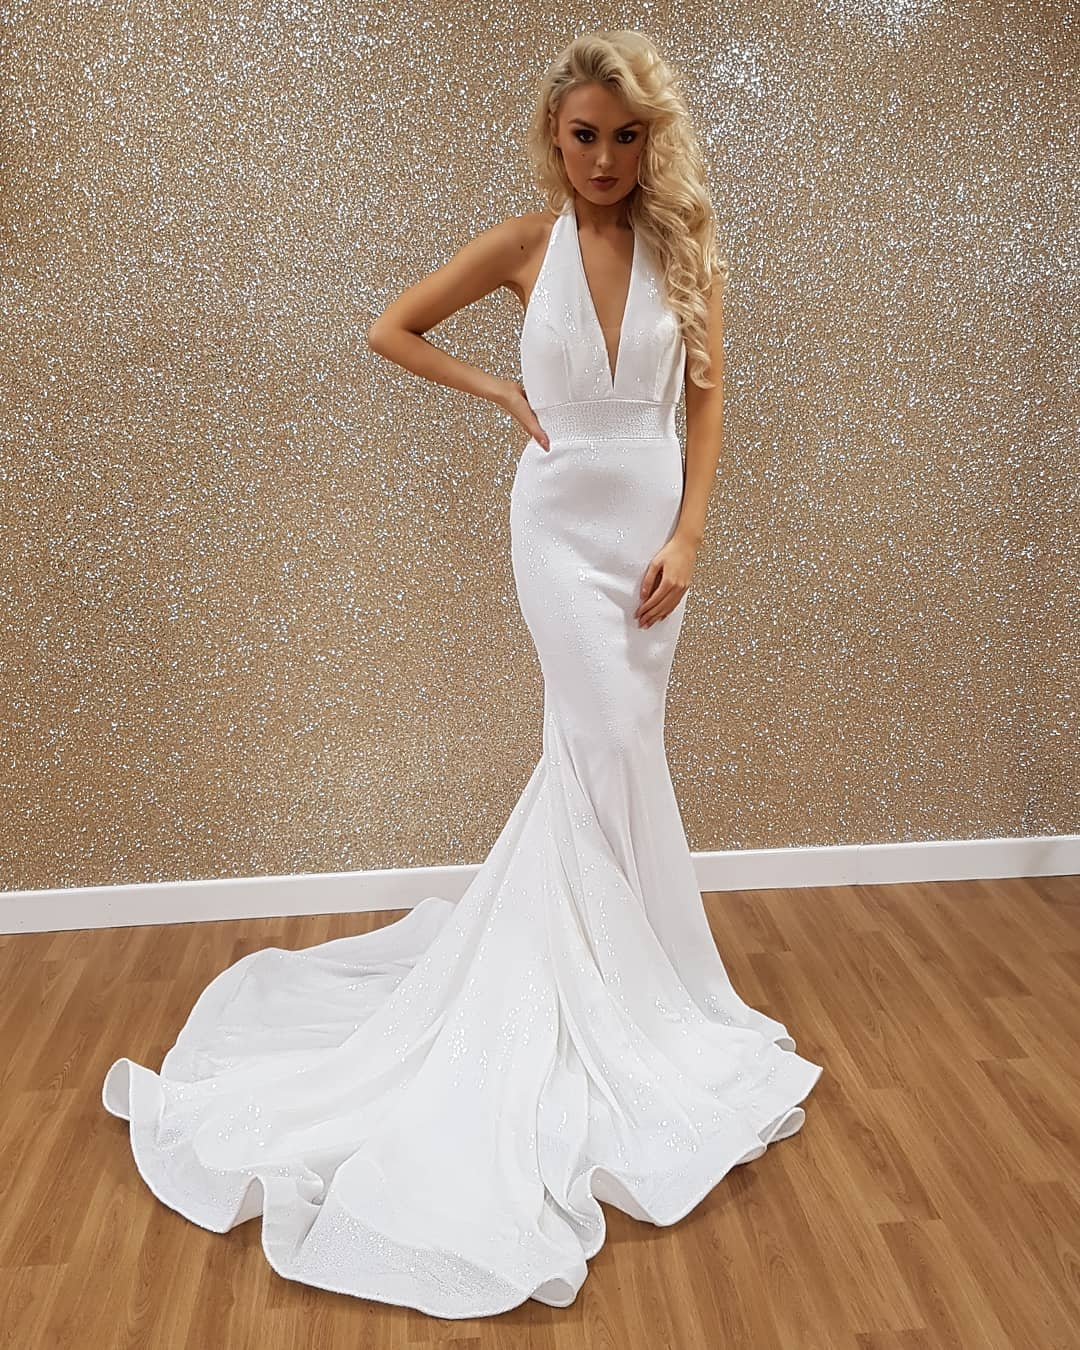 66ed0aa3 White Mermaid Prom Dress Halter Sexy Deep V-Neck Open Back Sequins ...